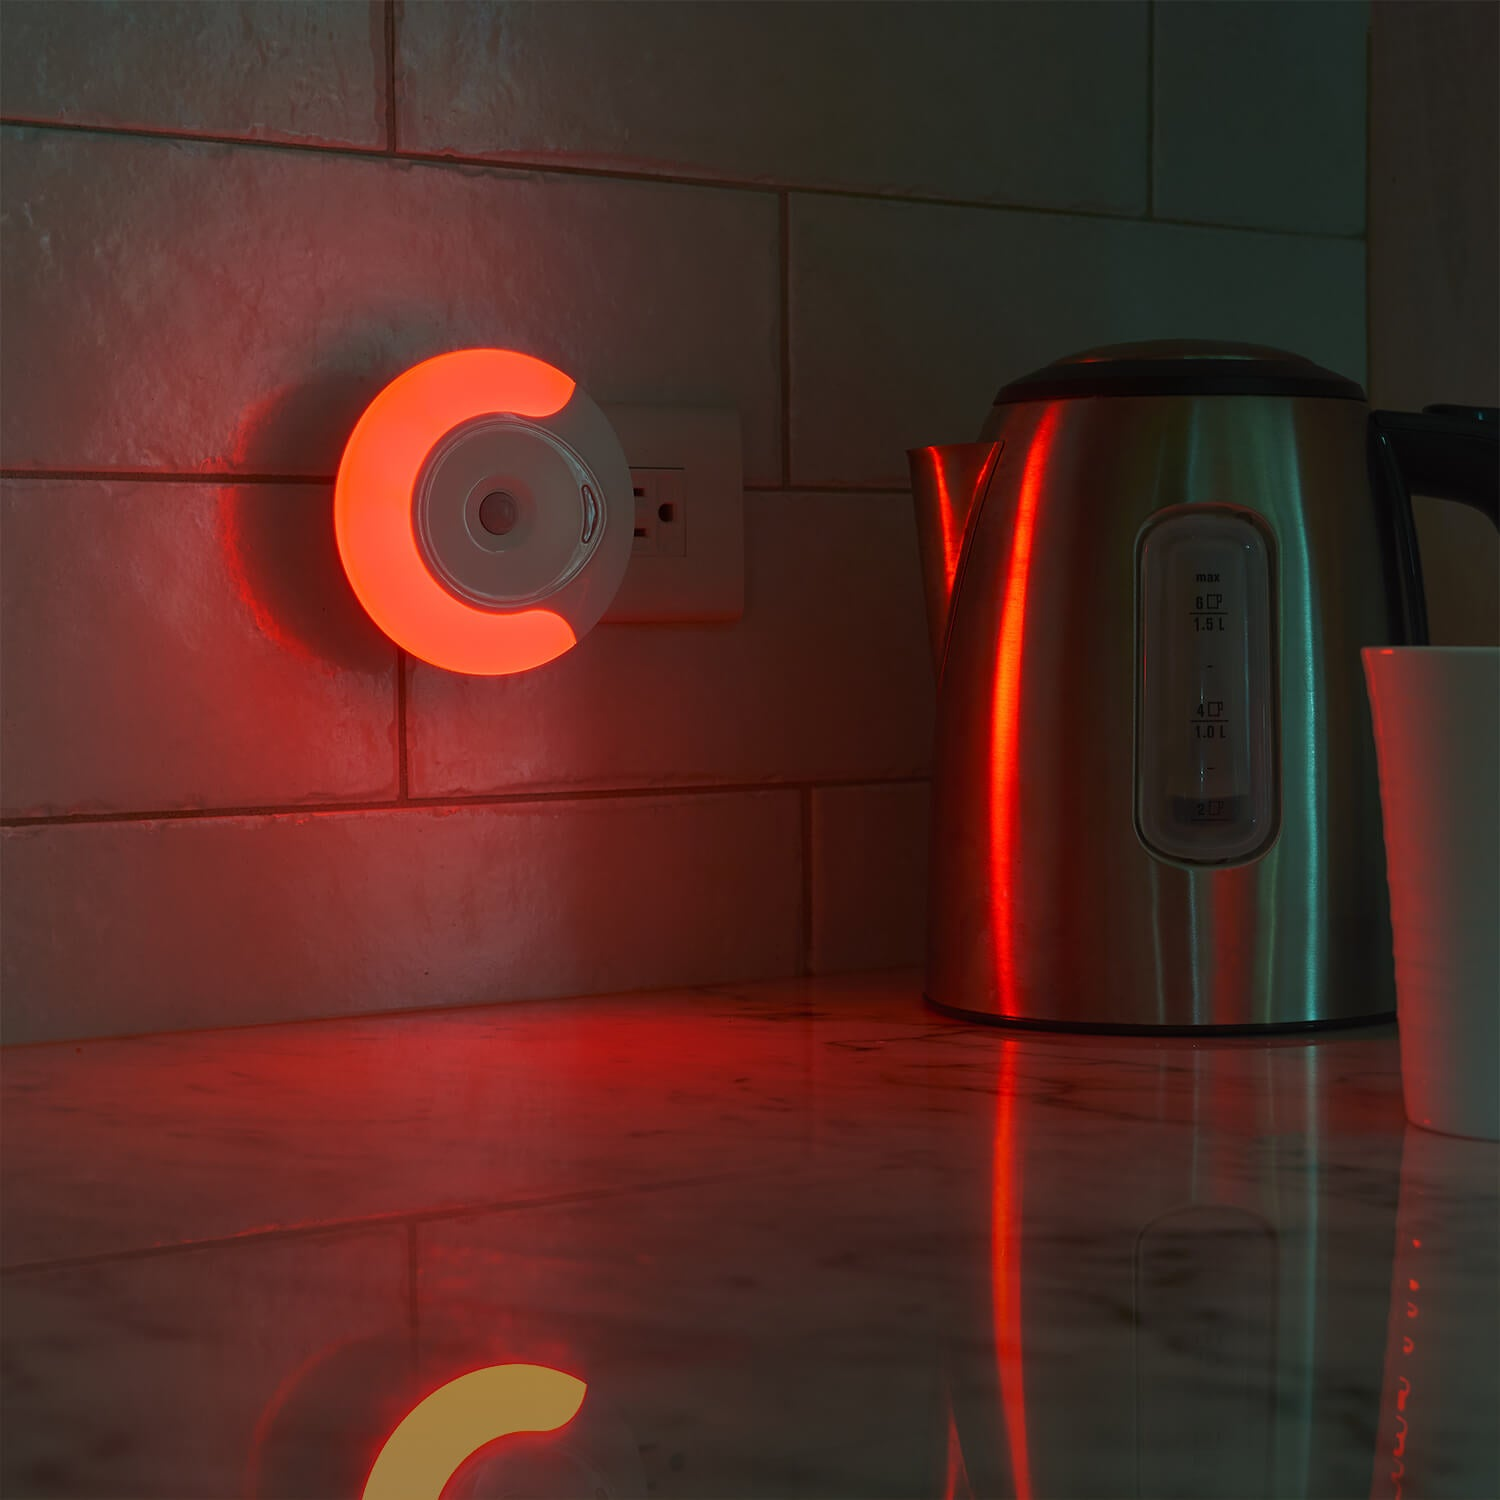 Sleep Aid Motion Activated Night Light - Red